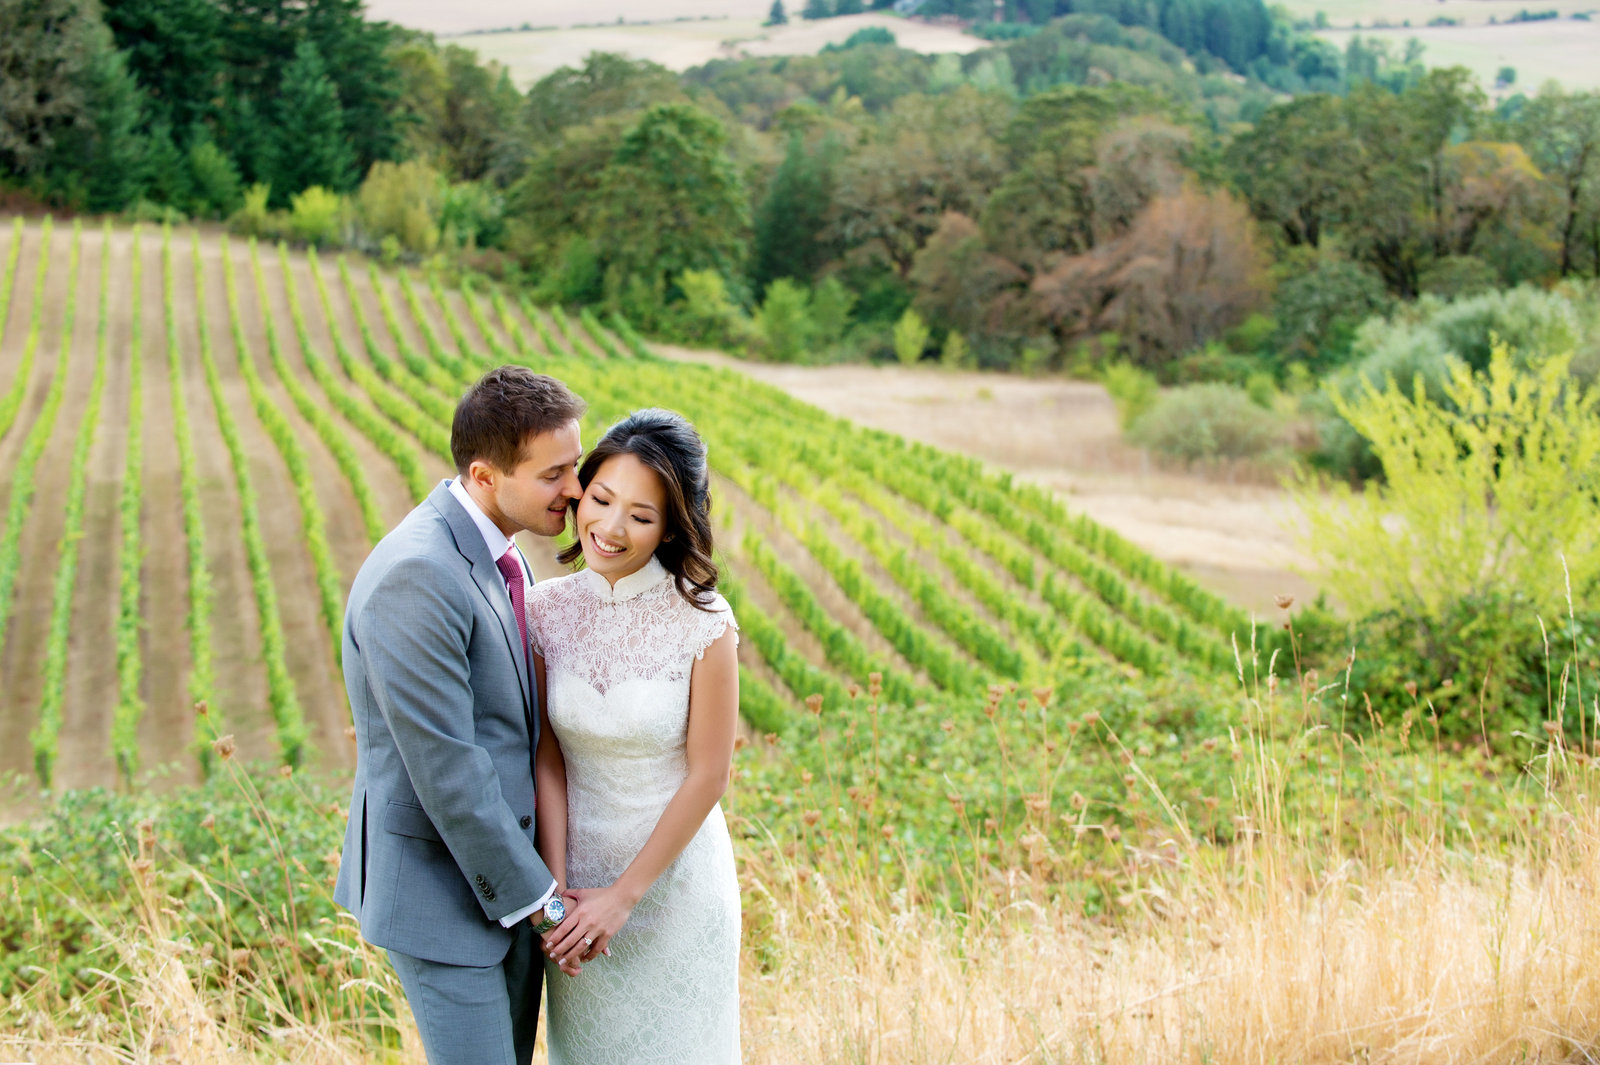 Crystal Genes Photography YOUNGBERG HILL WEDDING_150903-151456